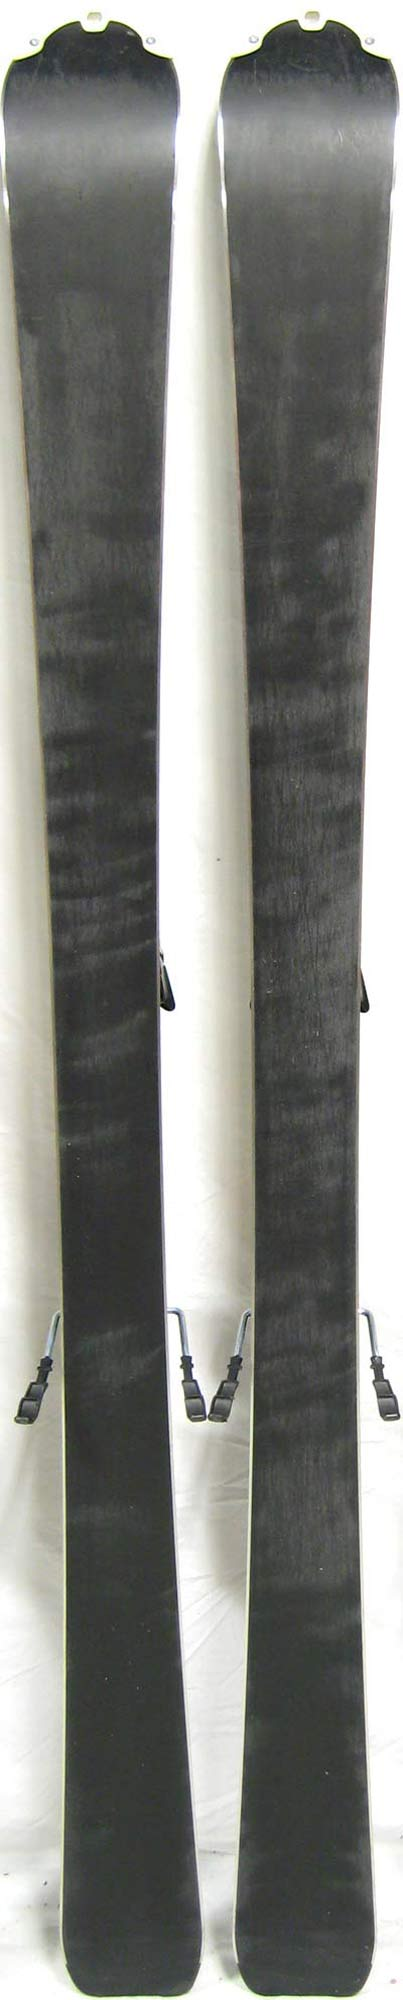 Bases of 2011 Volkl Attiva Oceana Skis For Sale